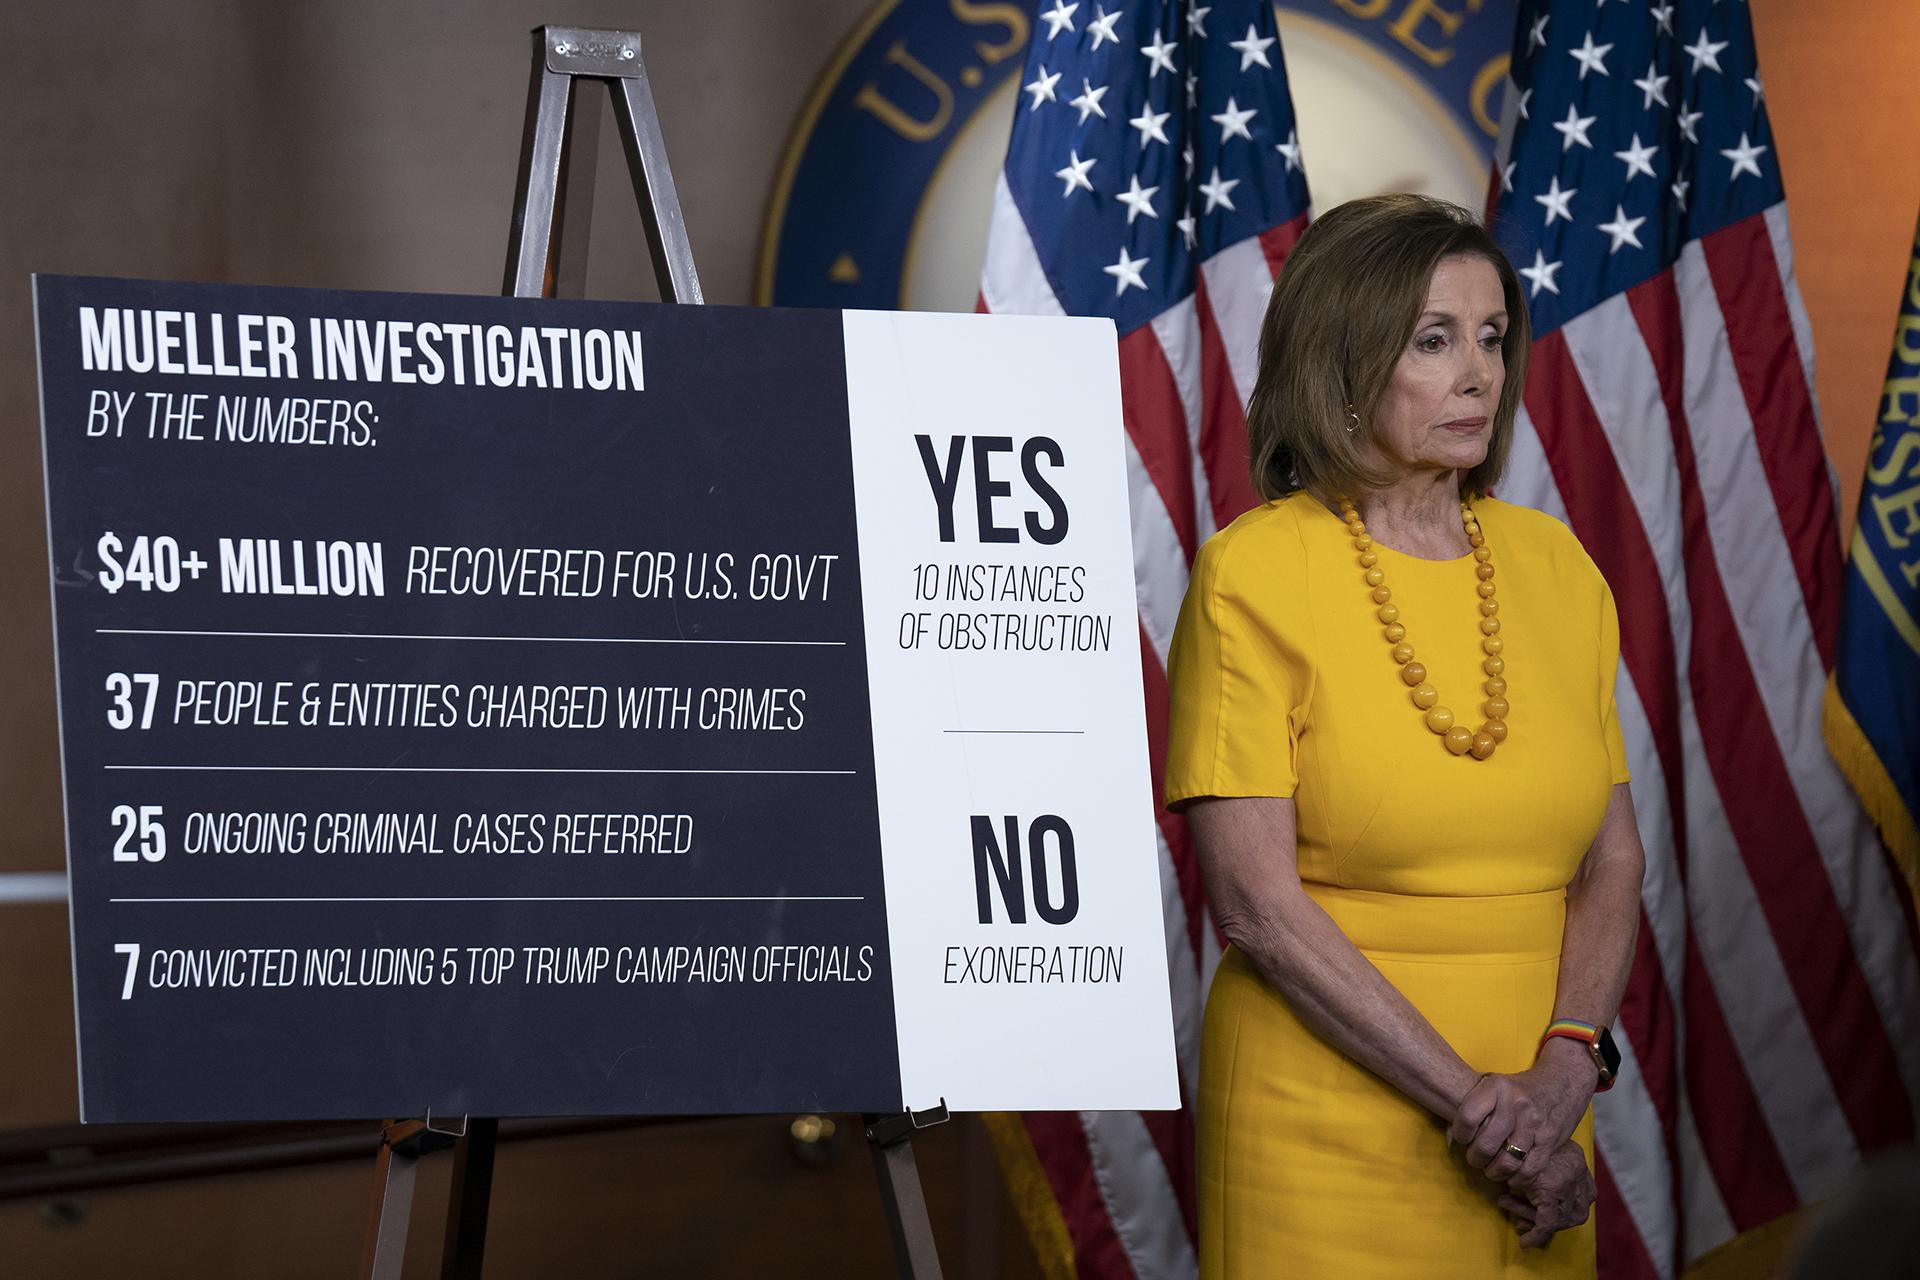 Speaker of the House Nancy Pelosi, D-California, stands beside a chart during a news conference following the back-to-back hearings with former special counsel Robert Mueller who testified about his investigation into Russian interference in the 2016 election, on Capitol Hill in Washington, Wednesday, July 24, 2019. (AP Photo / J. Scott Applewhite)